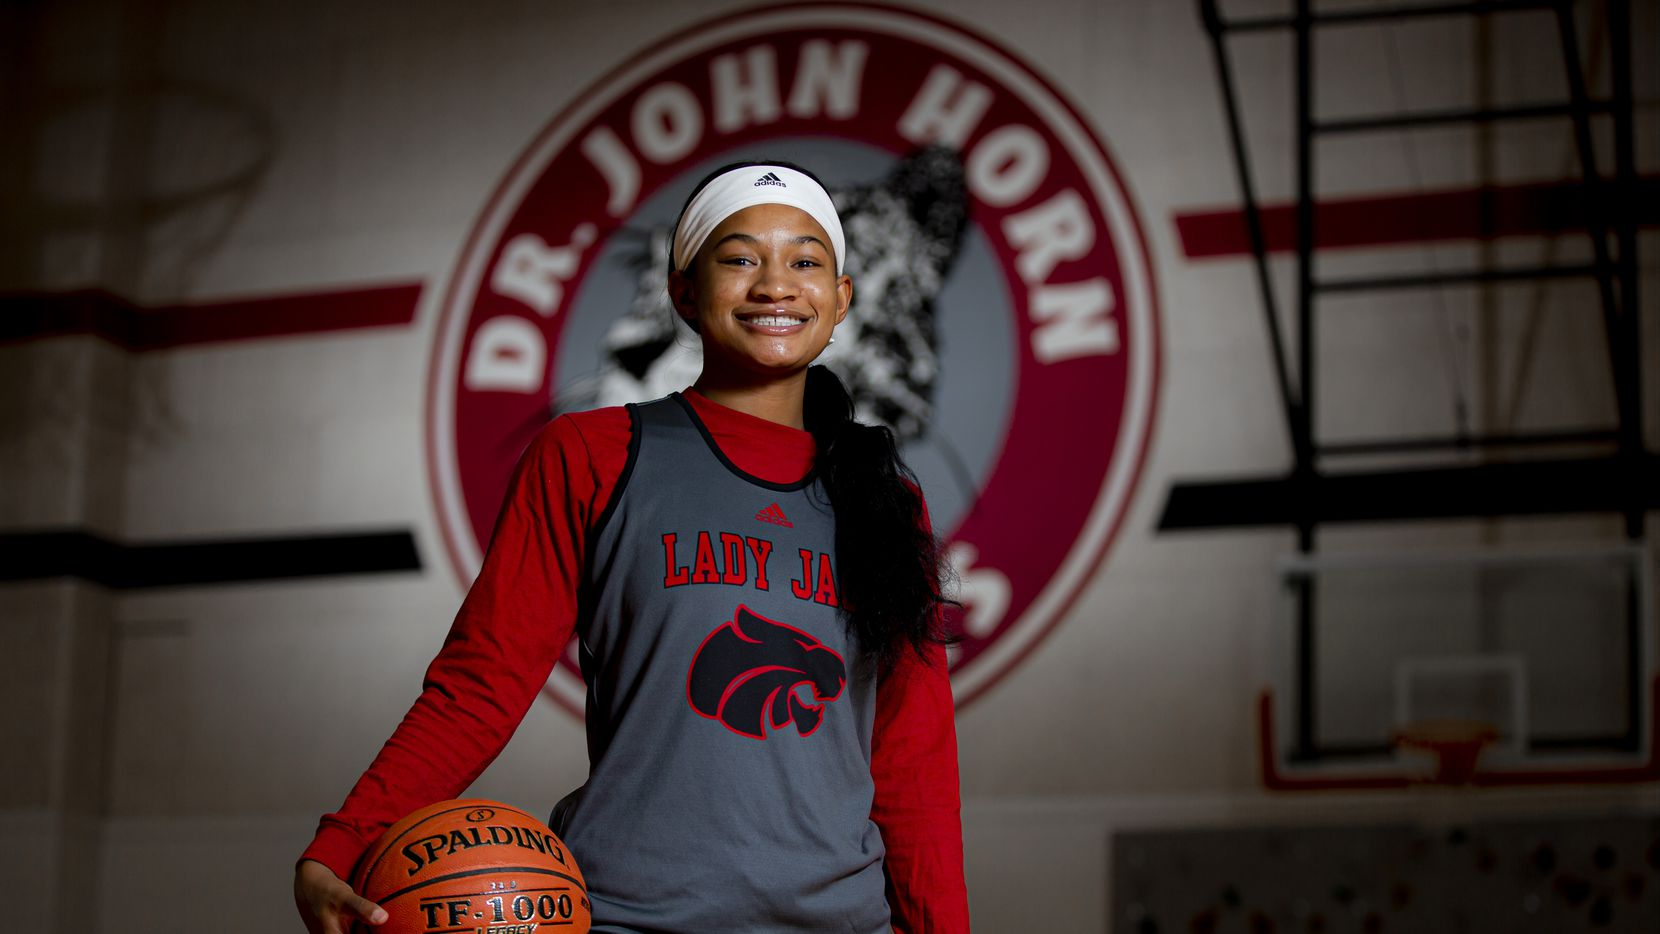 Senior point guard Jasmine Shavers poses for a photo at Mesquite Horn High School in Mesquite, Wednesday, November 4, 2020.